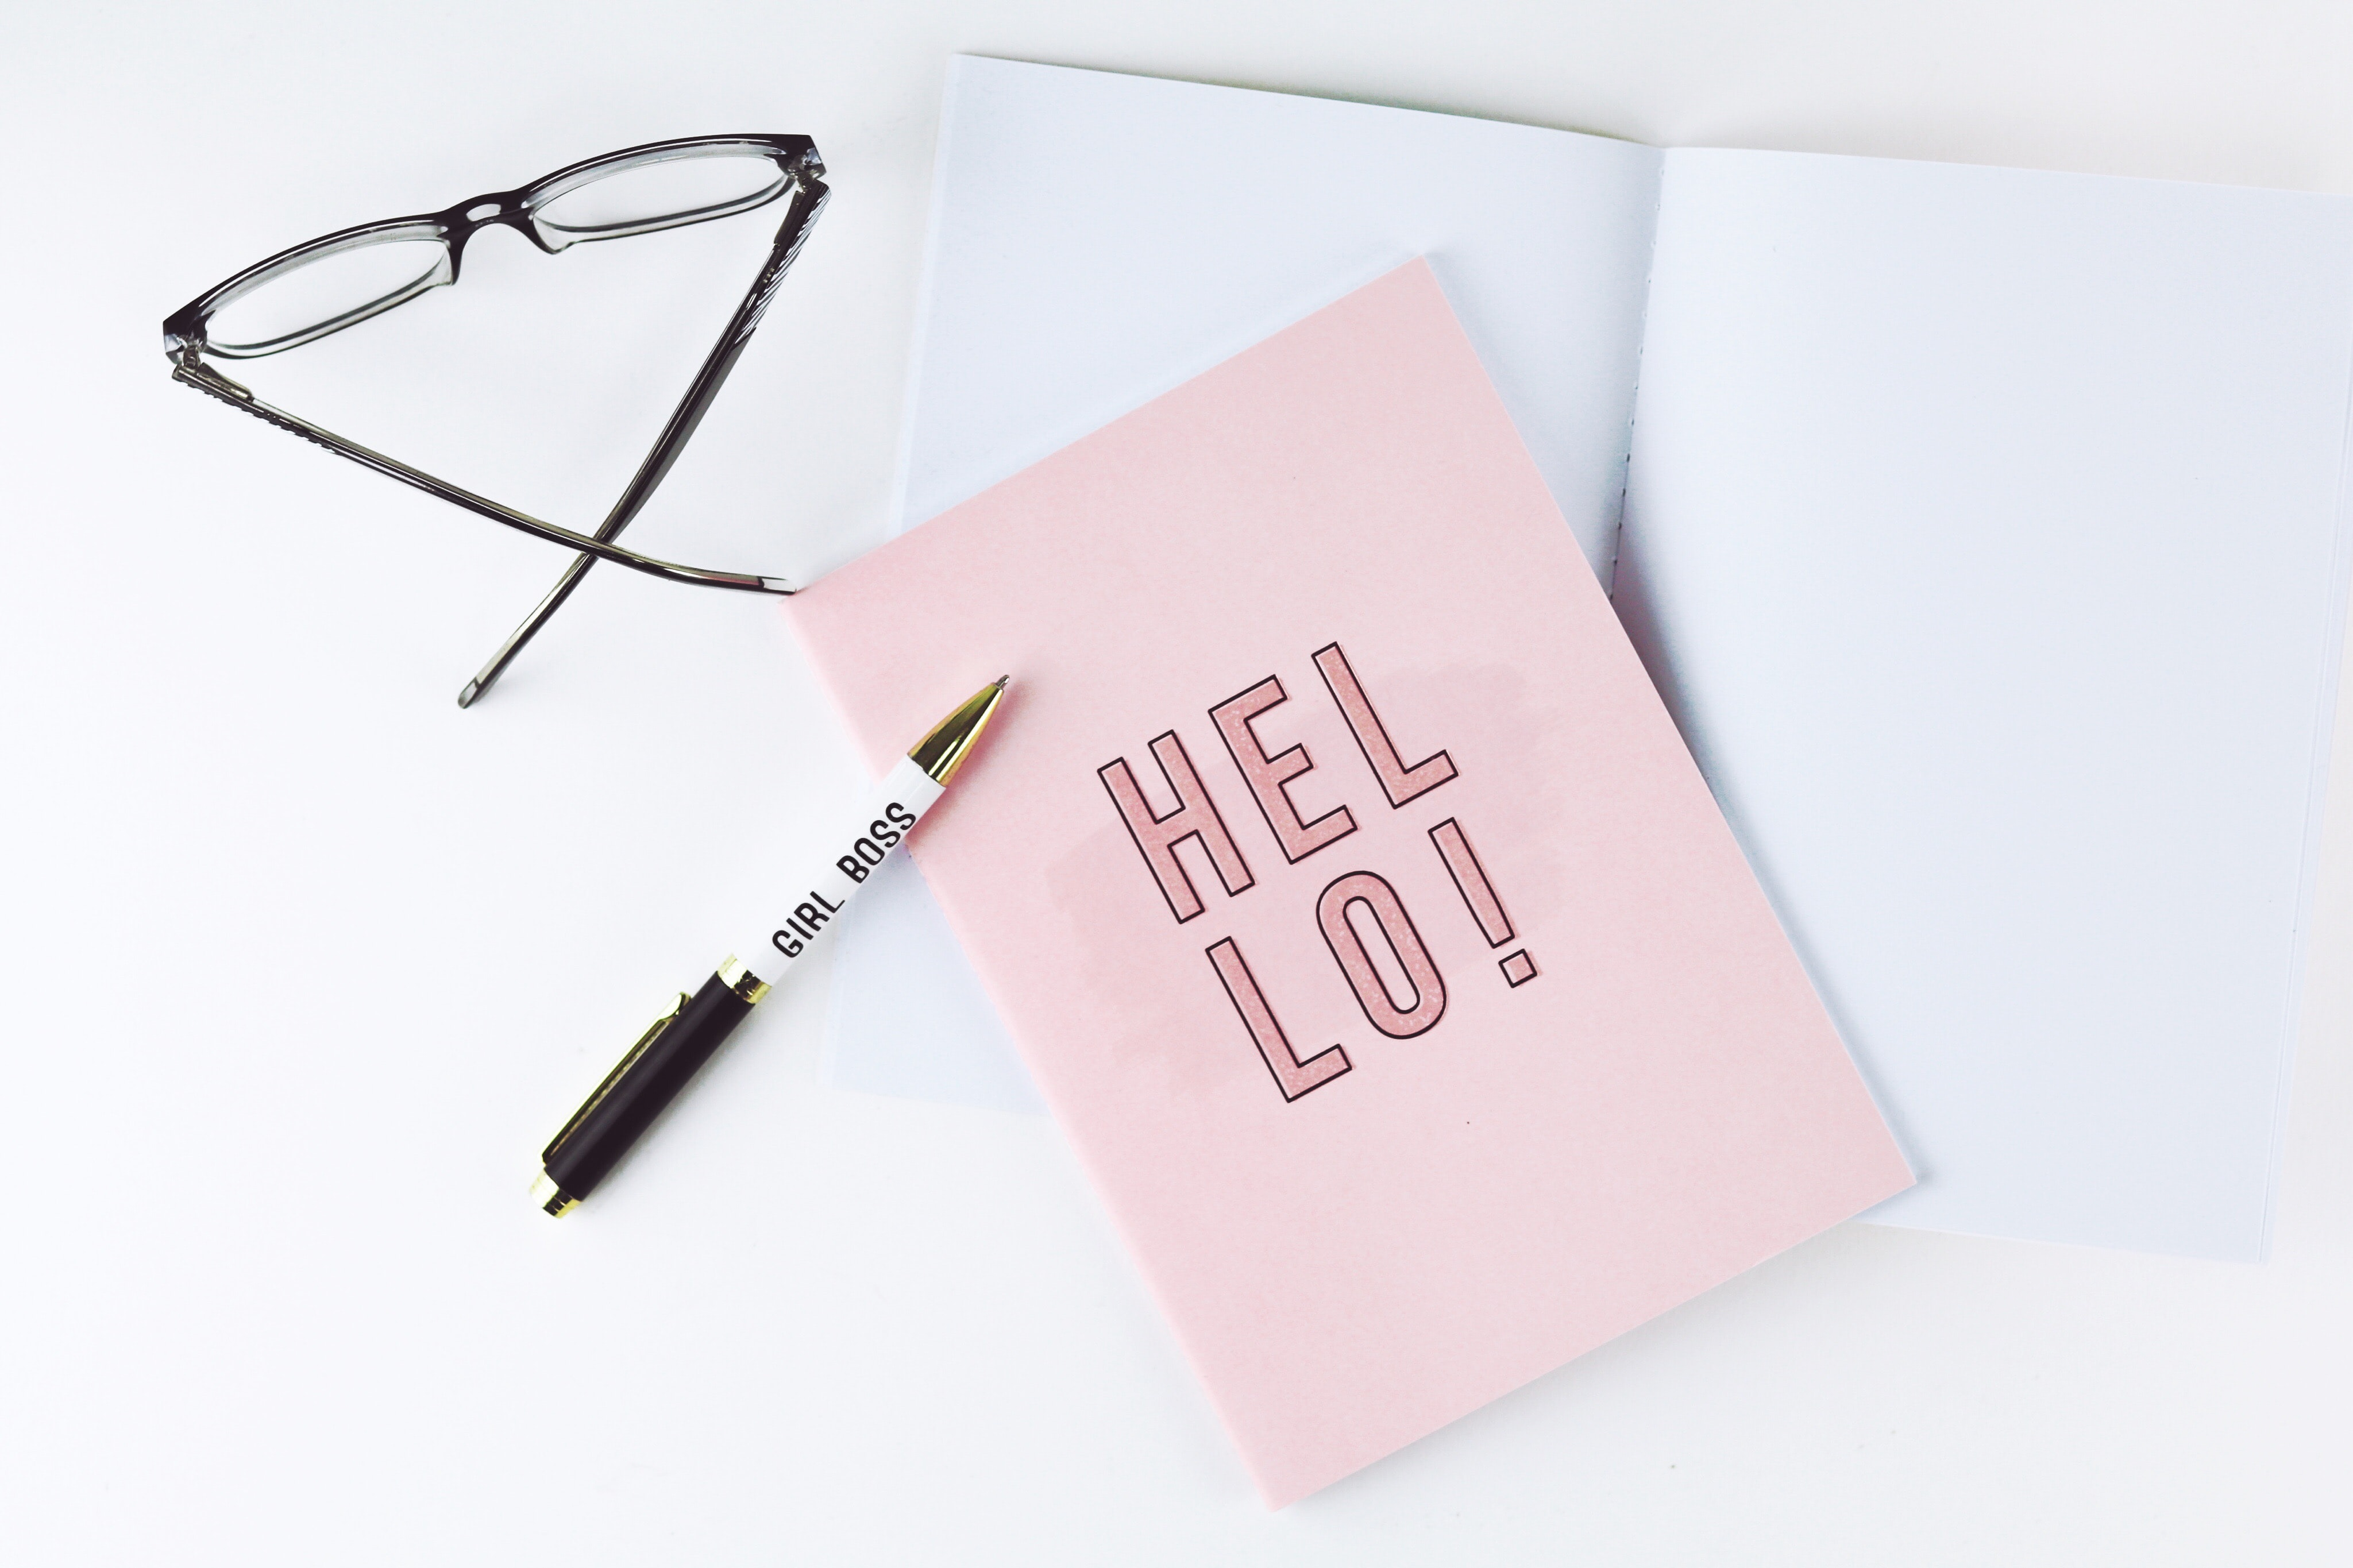 black ballpoint pen beside pink paper with hello written